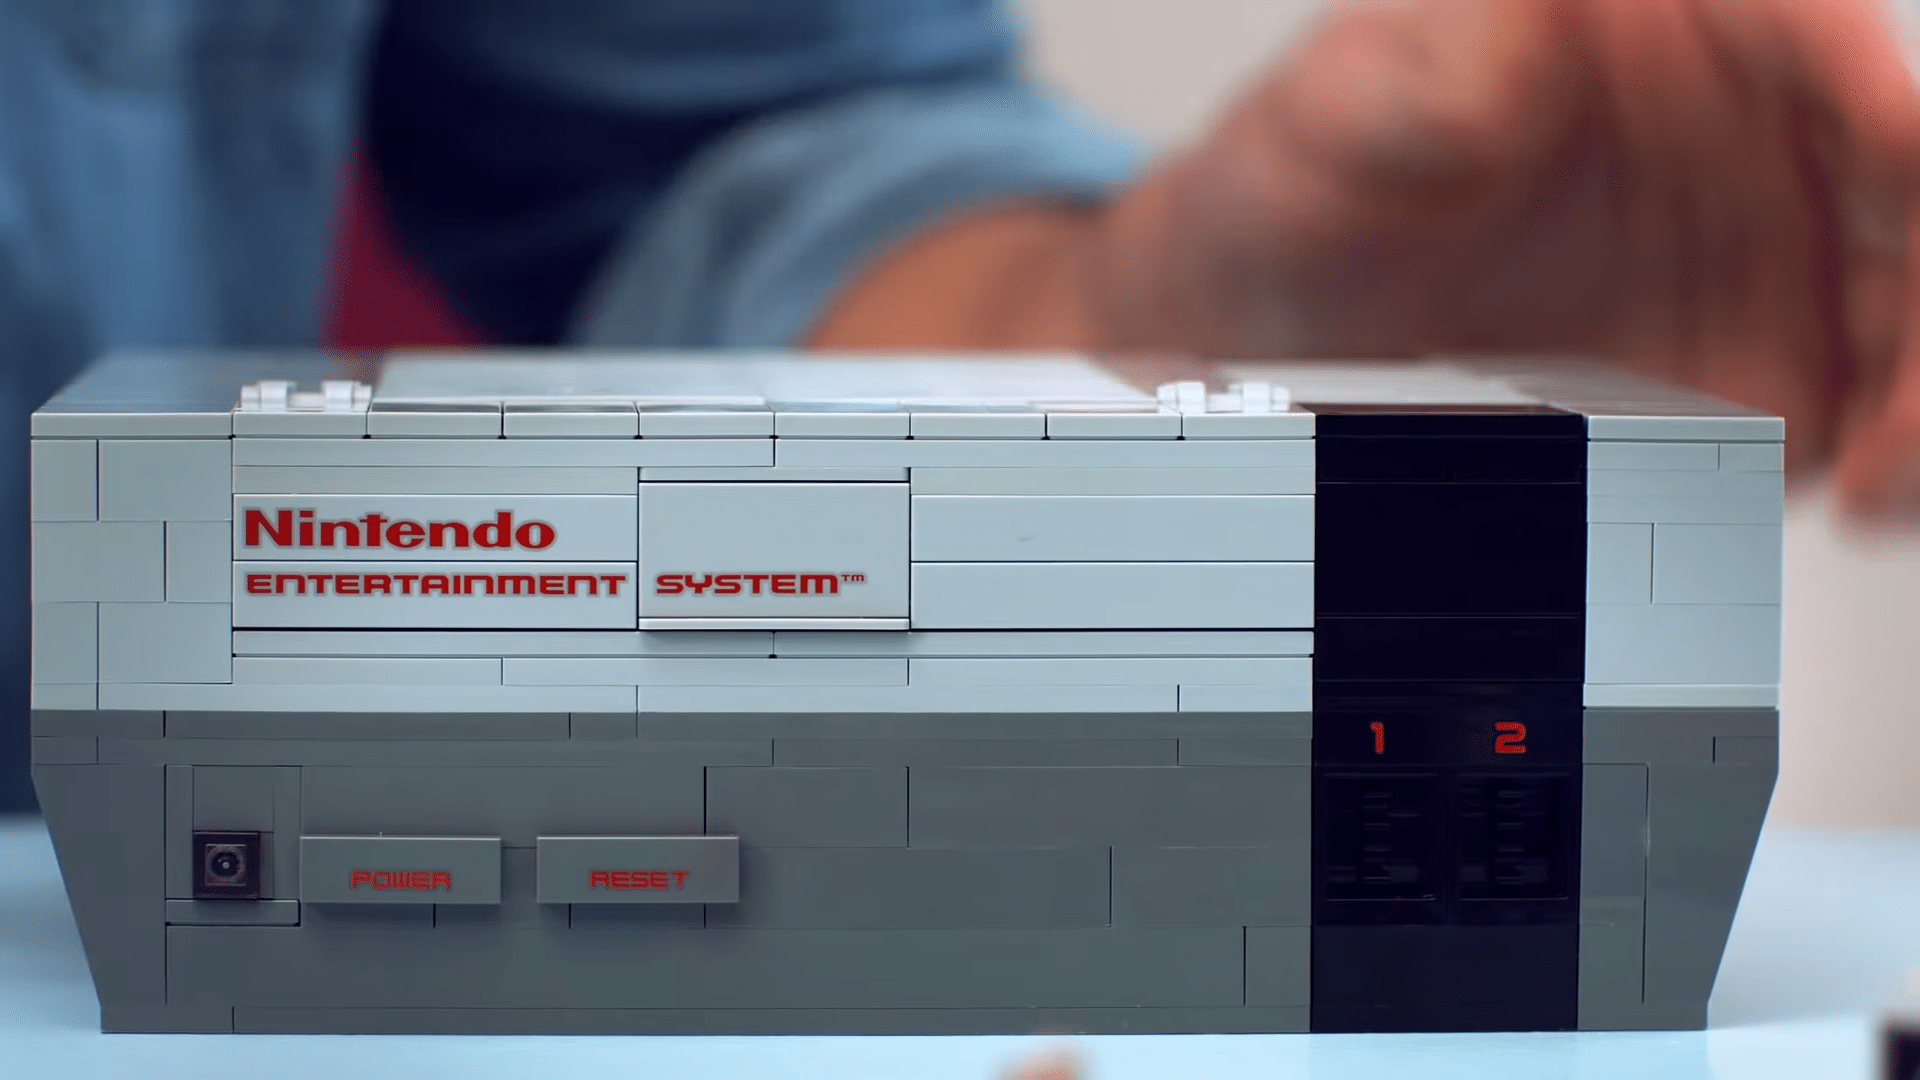 LEGO Nintendo Entertainment System Officieel onthuld